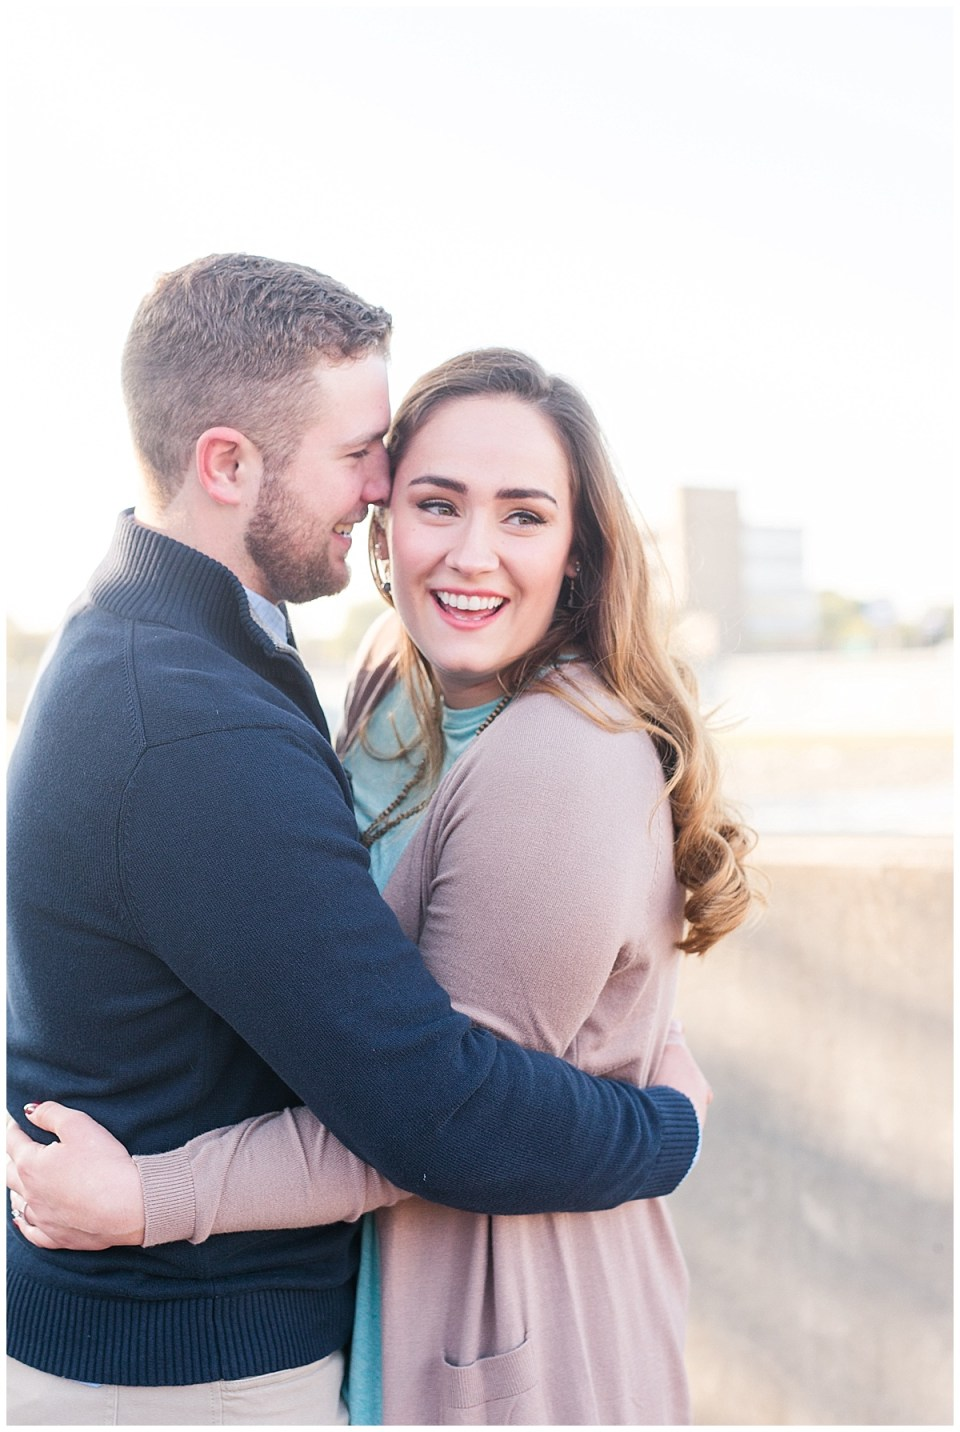 Fall Engagement Pictures with Puppy at Riverscape Park and Eastwood Lake in Dayton, Ohio photographed by Rachael Leigh Photography